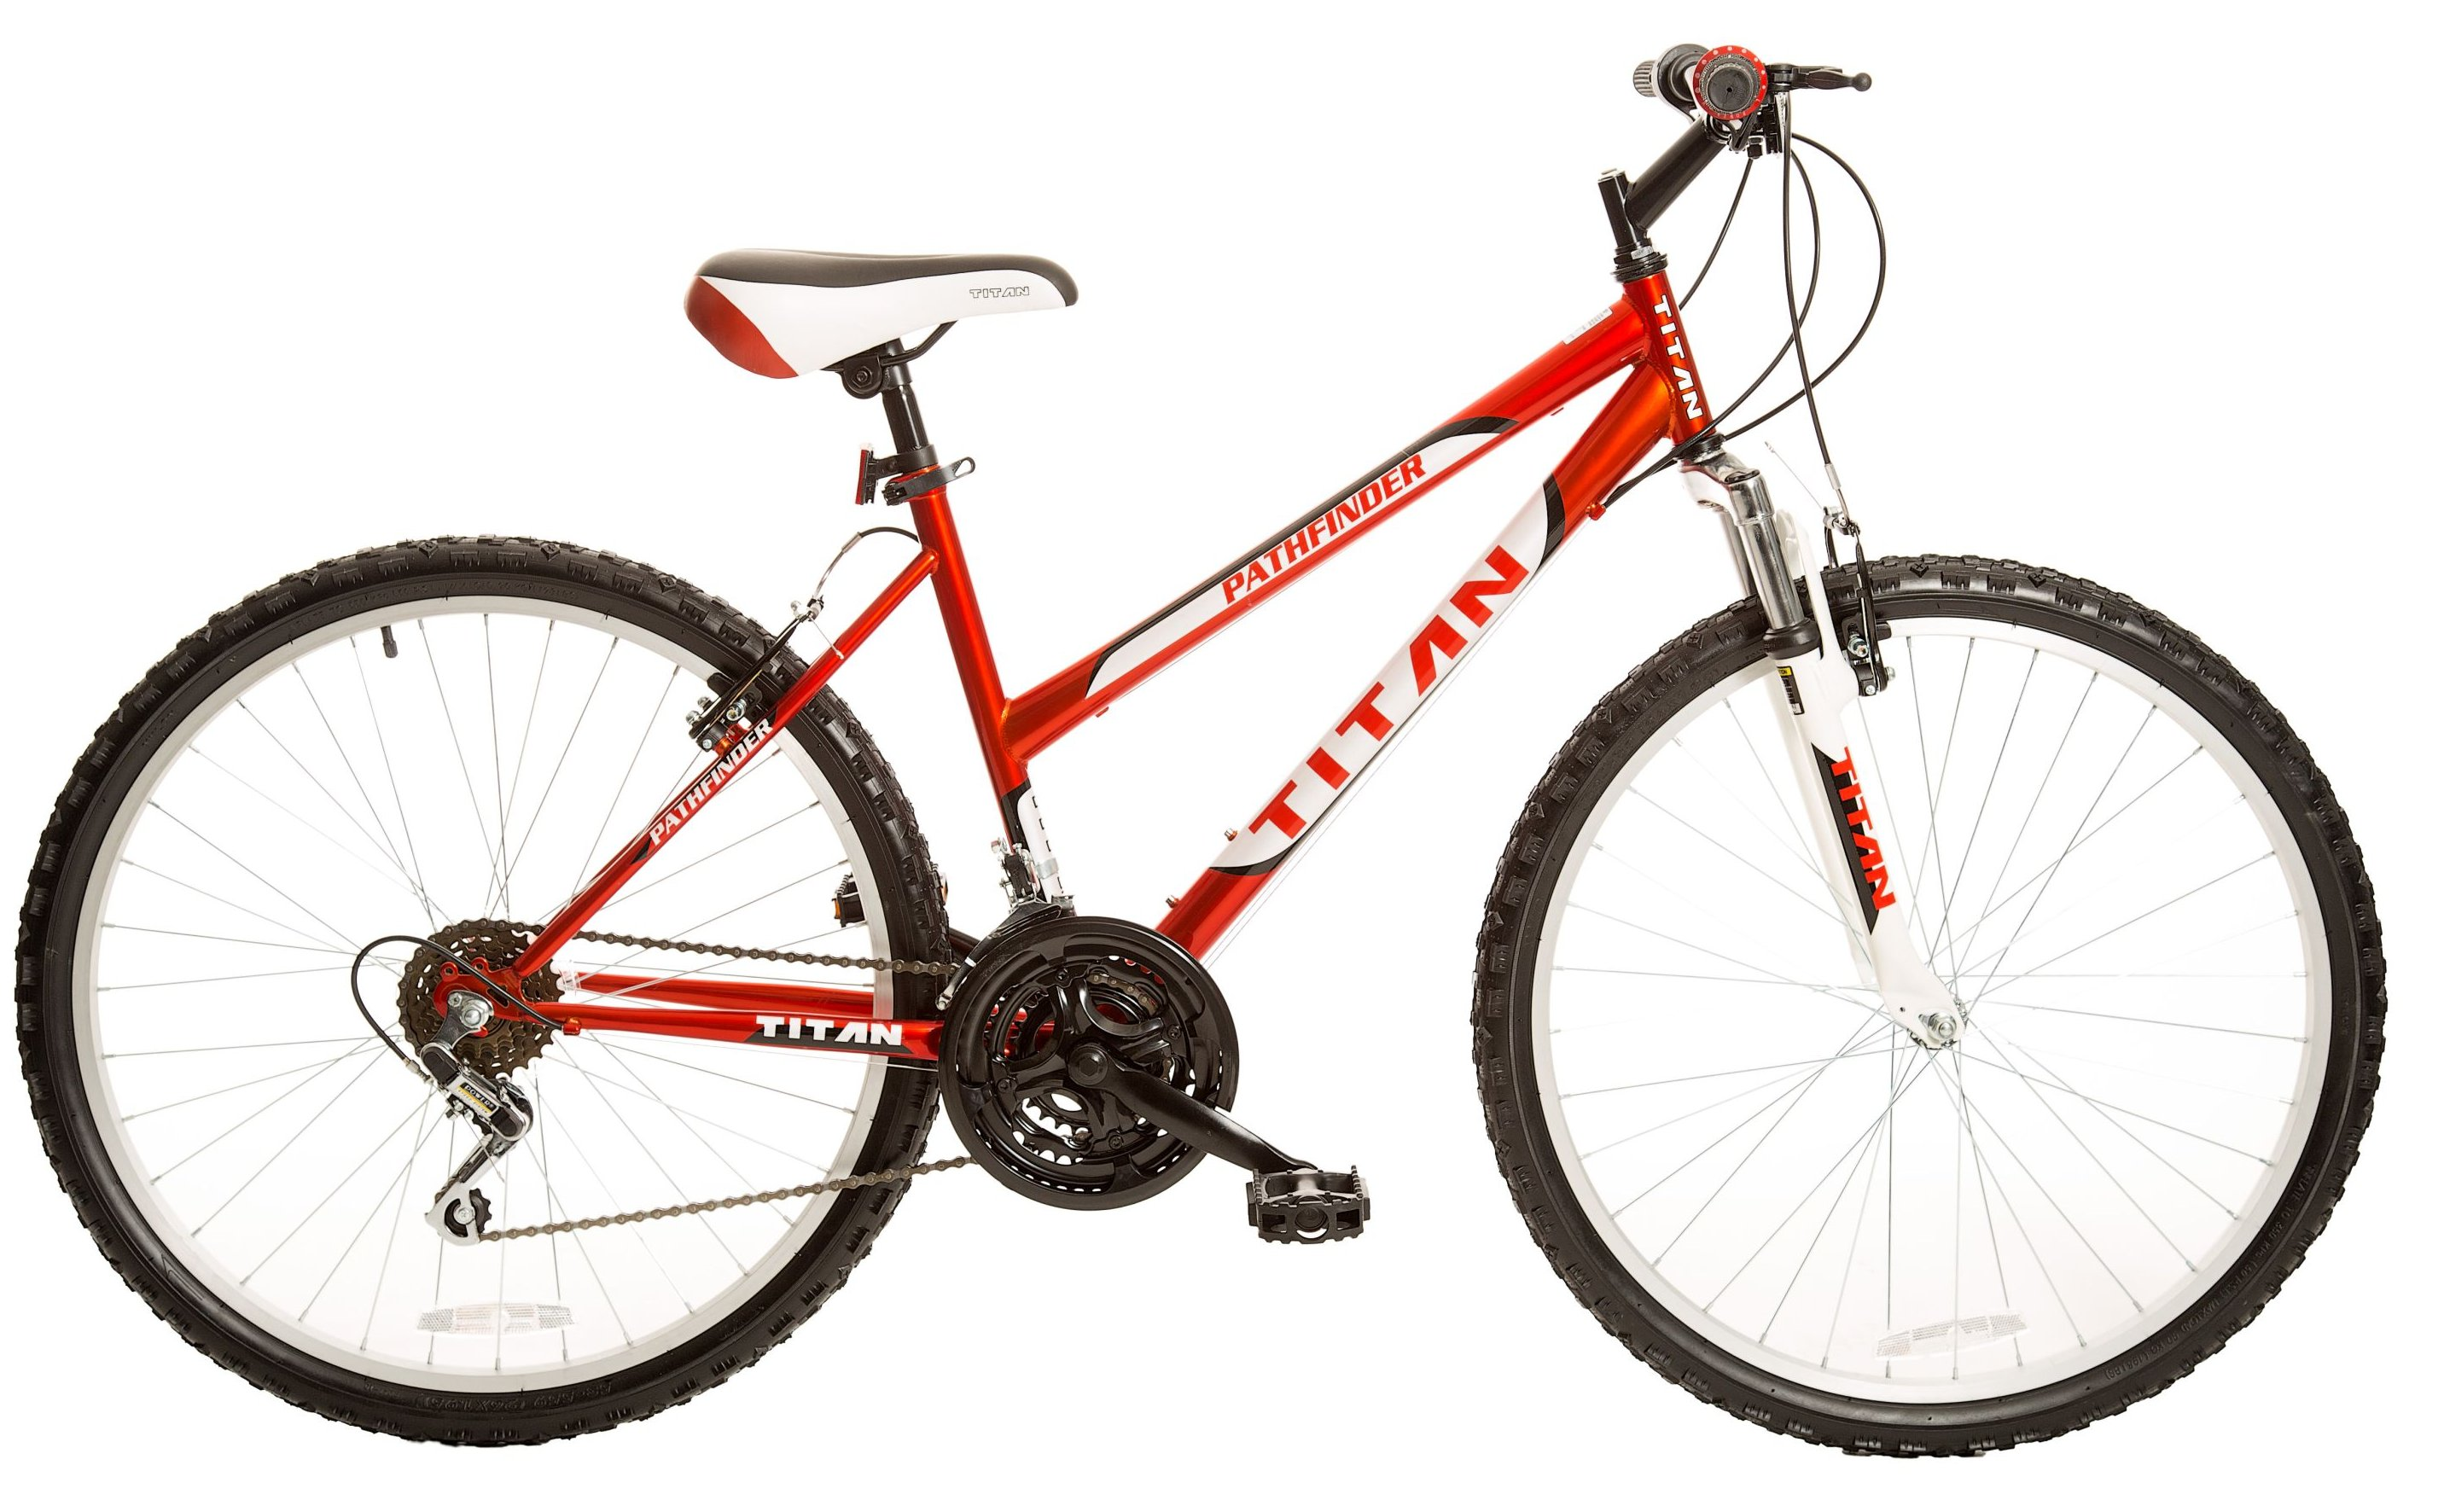 Titan Pathfinder 105 26 Ladies Steel ATB 18 Speed All Terrain Bicycle